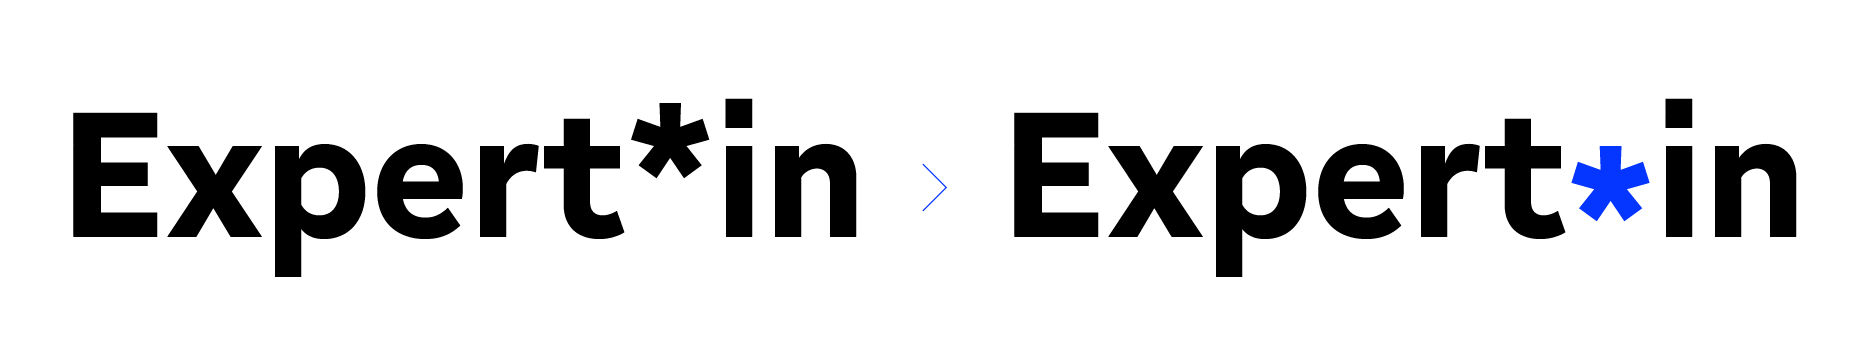 Type Mates Gratimo Grotesk Open Type Features Calt Gender Frendly